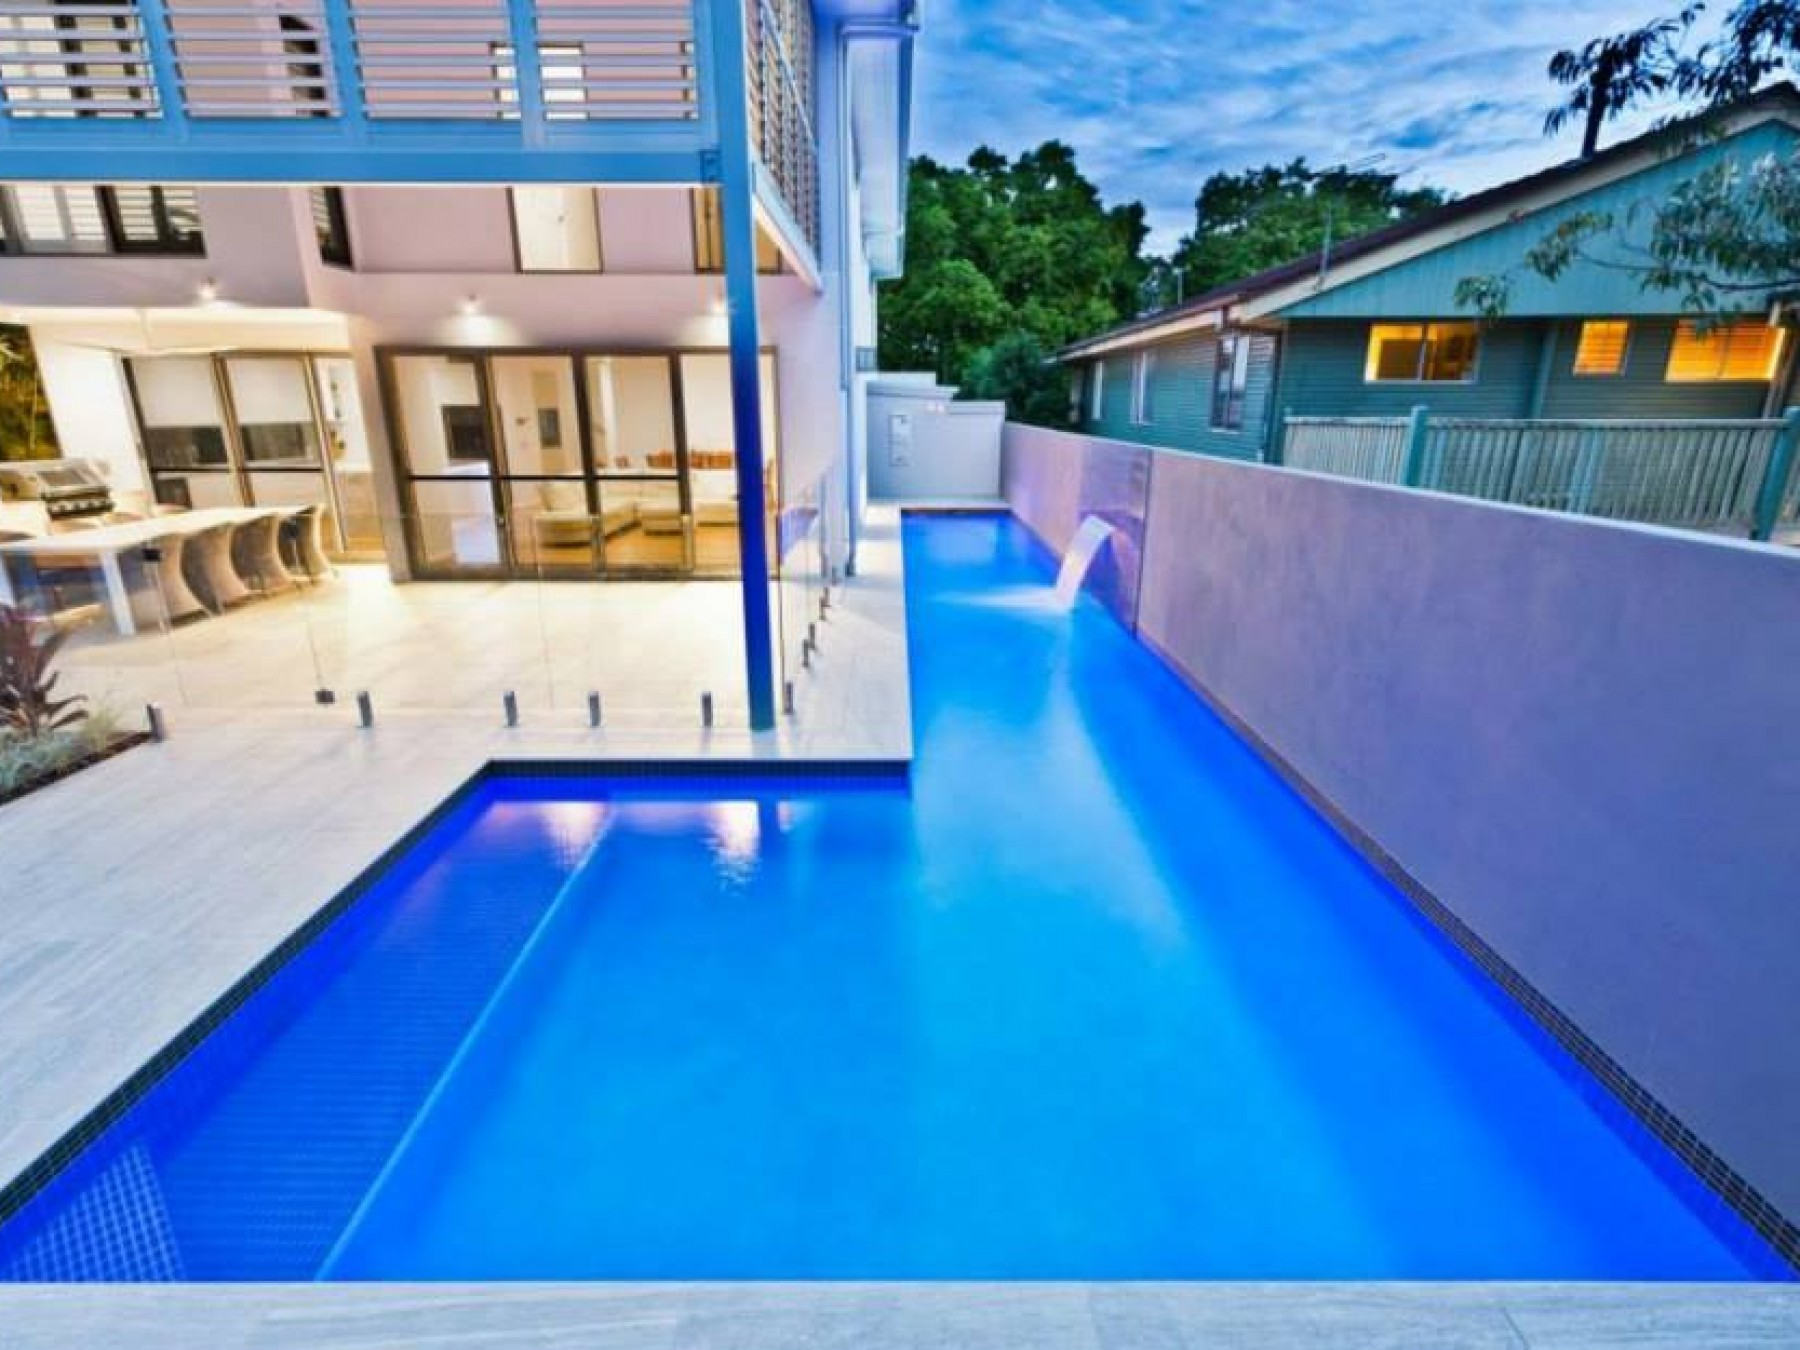 Selling or Leasing a pool in Aspley